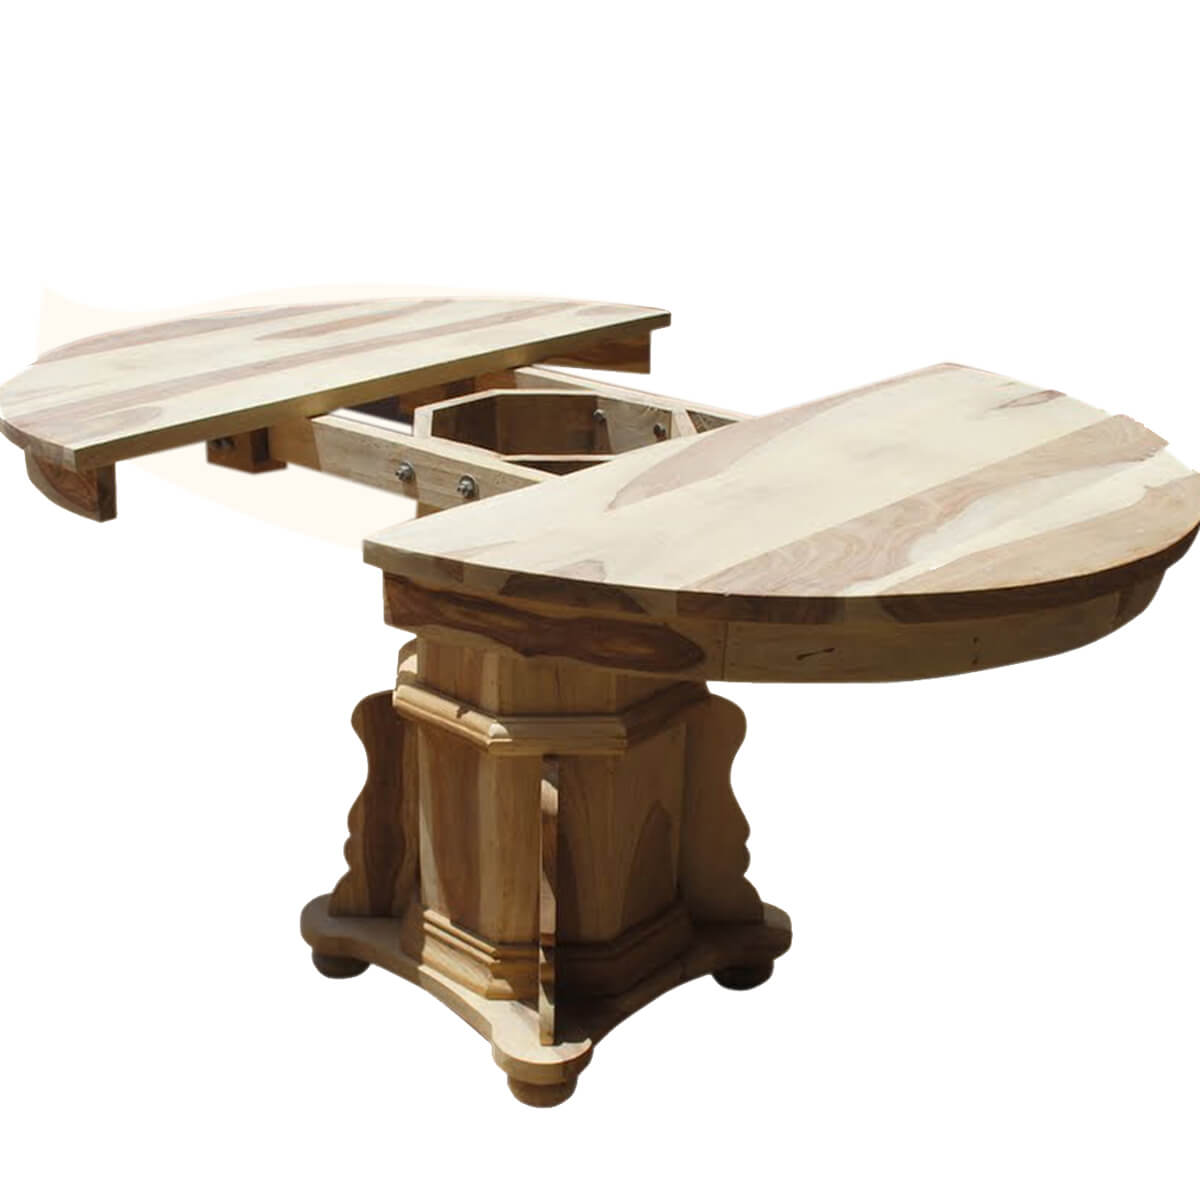 Dallas Ranch Solid Wood Pedestal Round Dining Table w  : 71204 from www.sierralivingconcepts.com size 1200 x 1200 jpeg 337kB